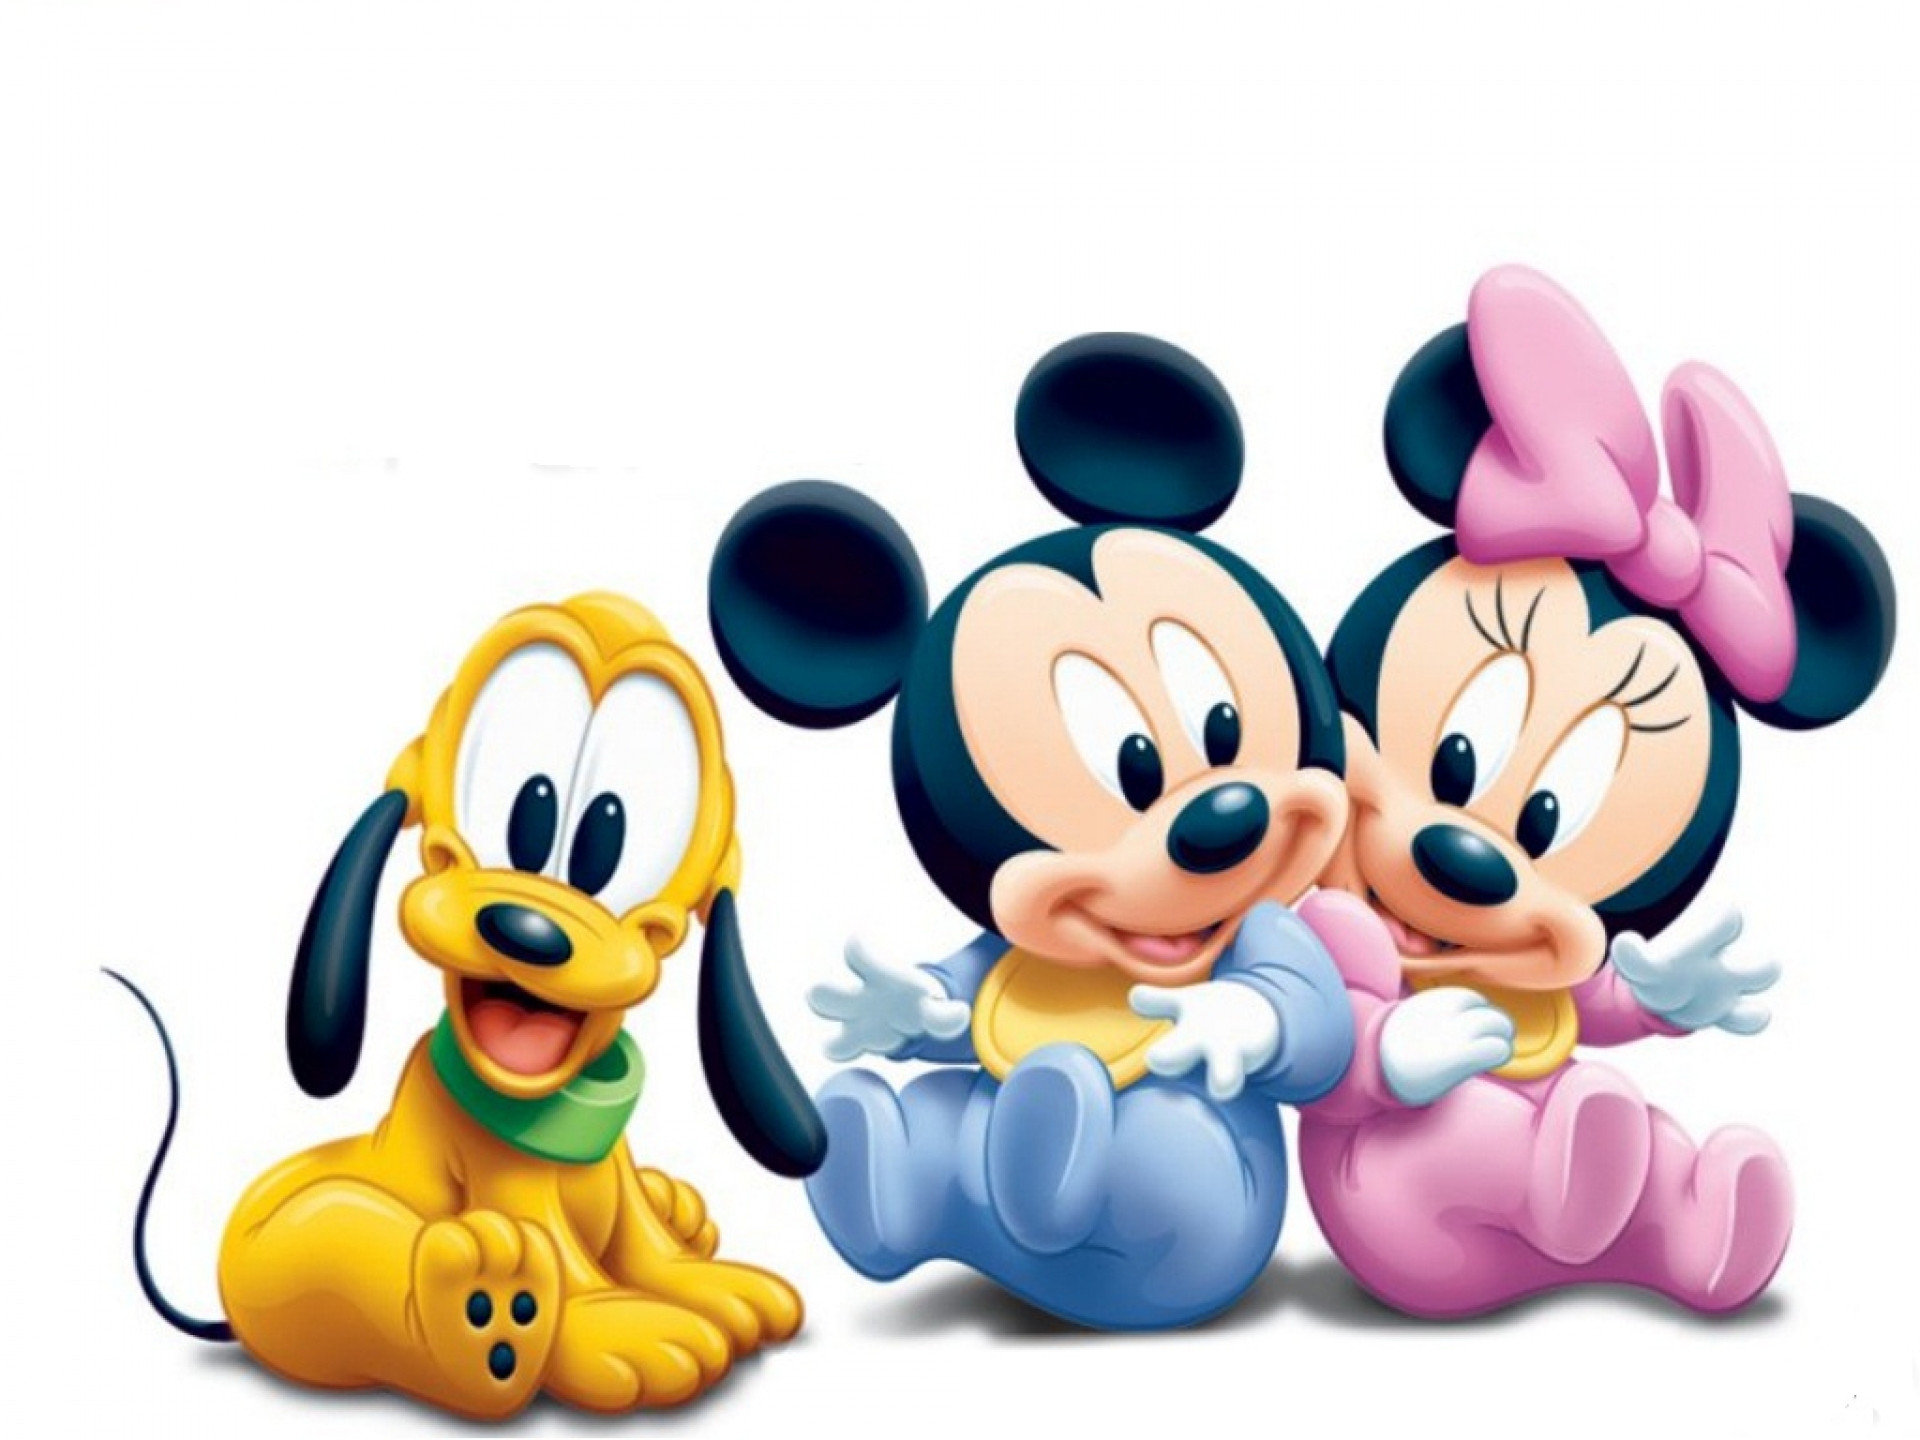 Cute Babies Hd Wallpapers For Mobile Free Download Mickey Mouse Characters Images Pixelstalk Net